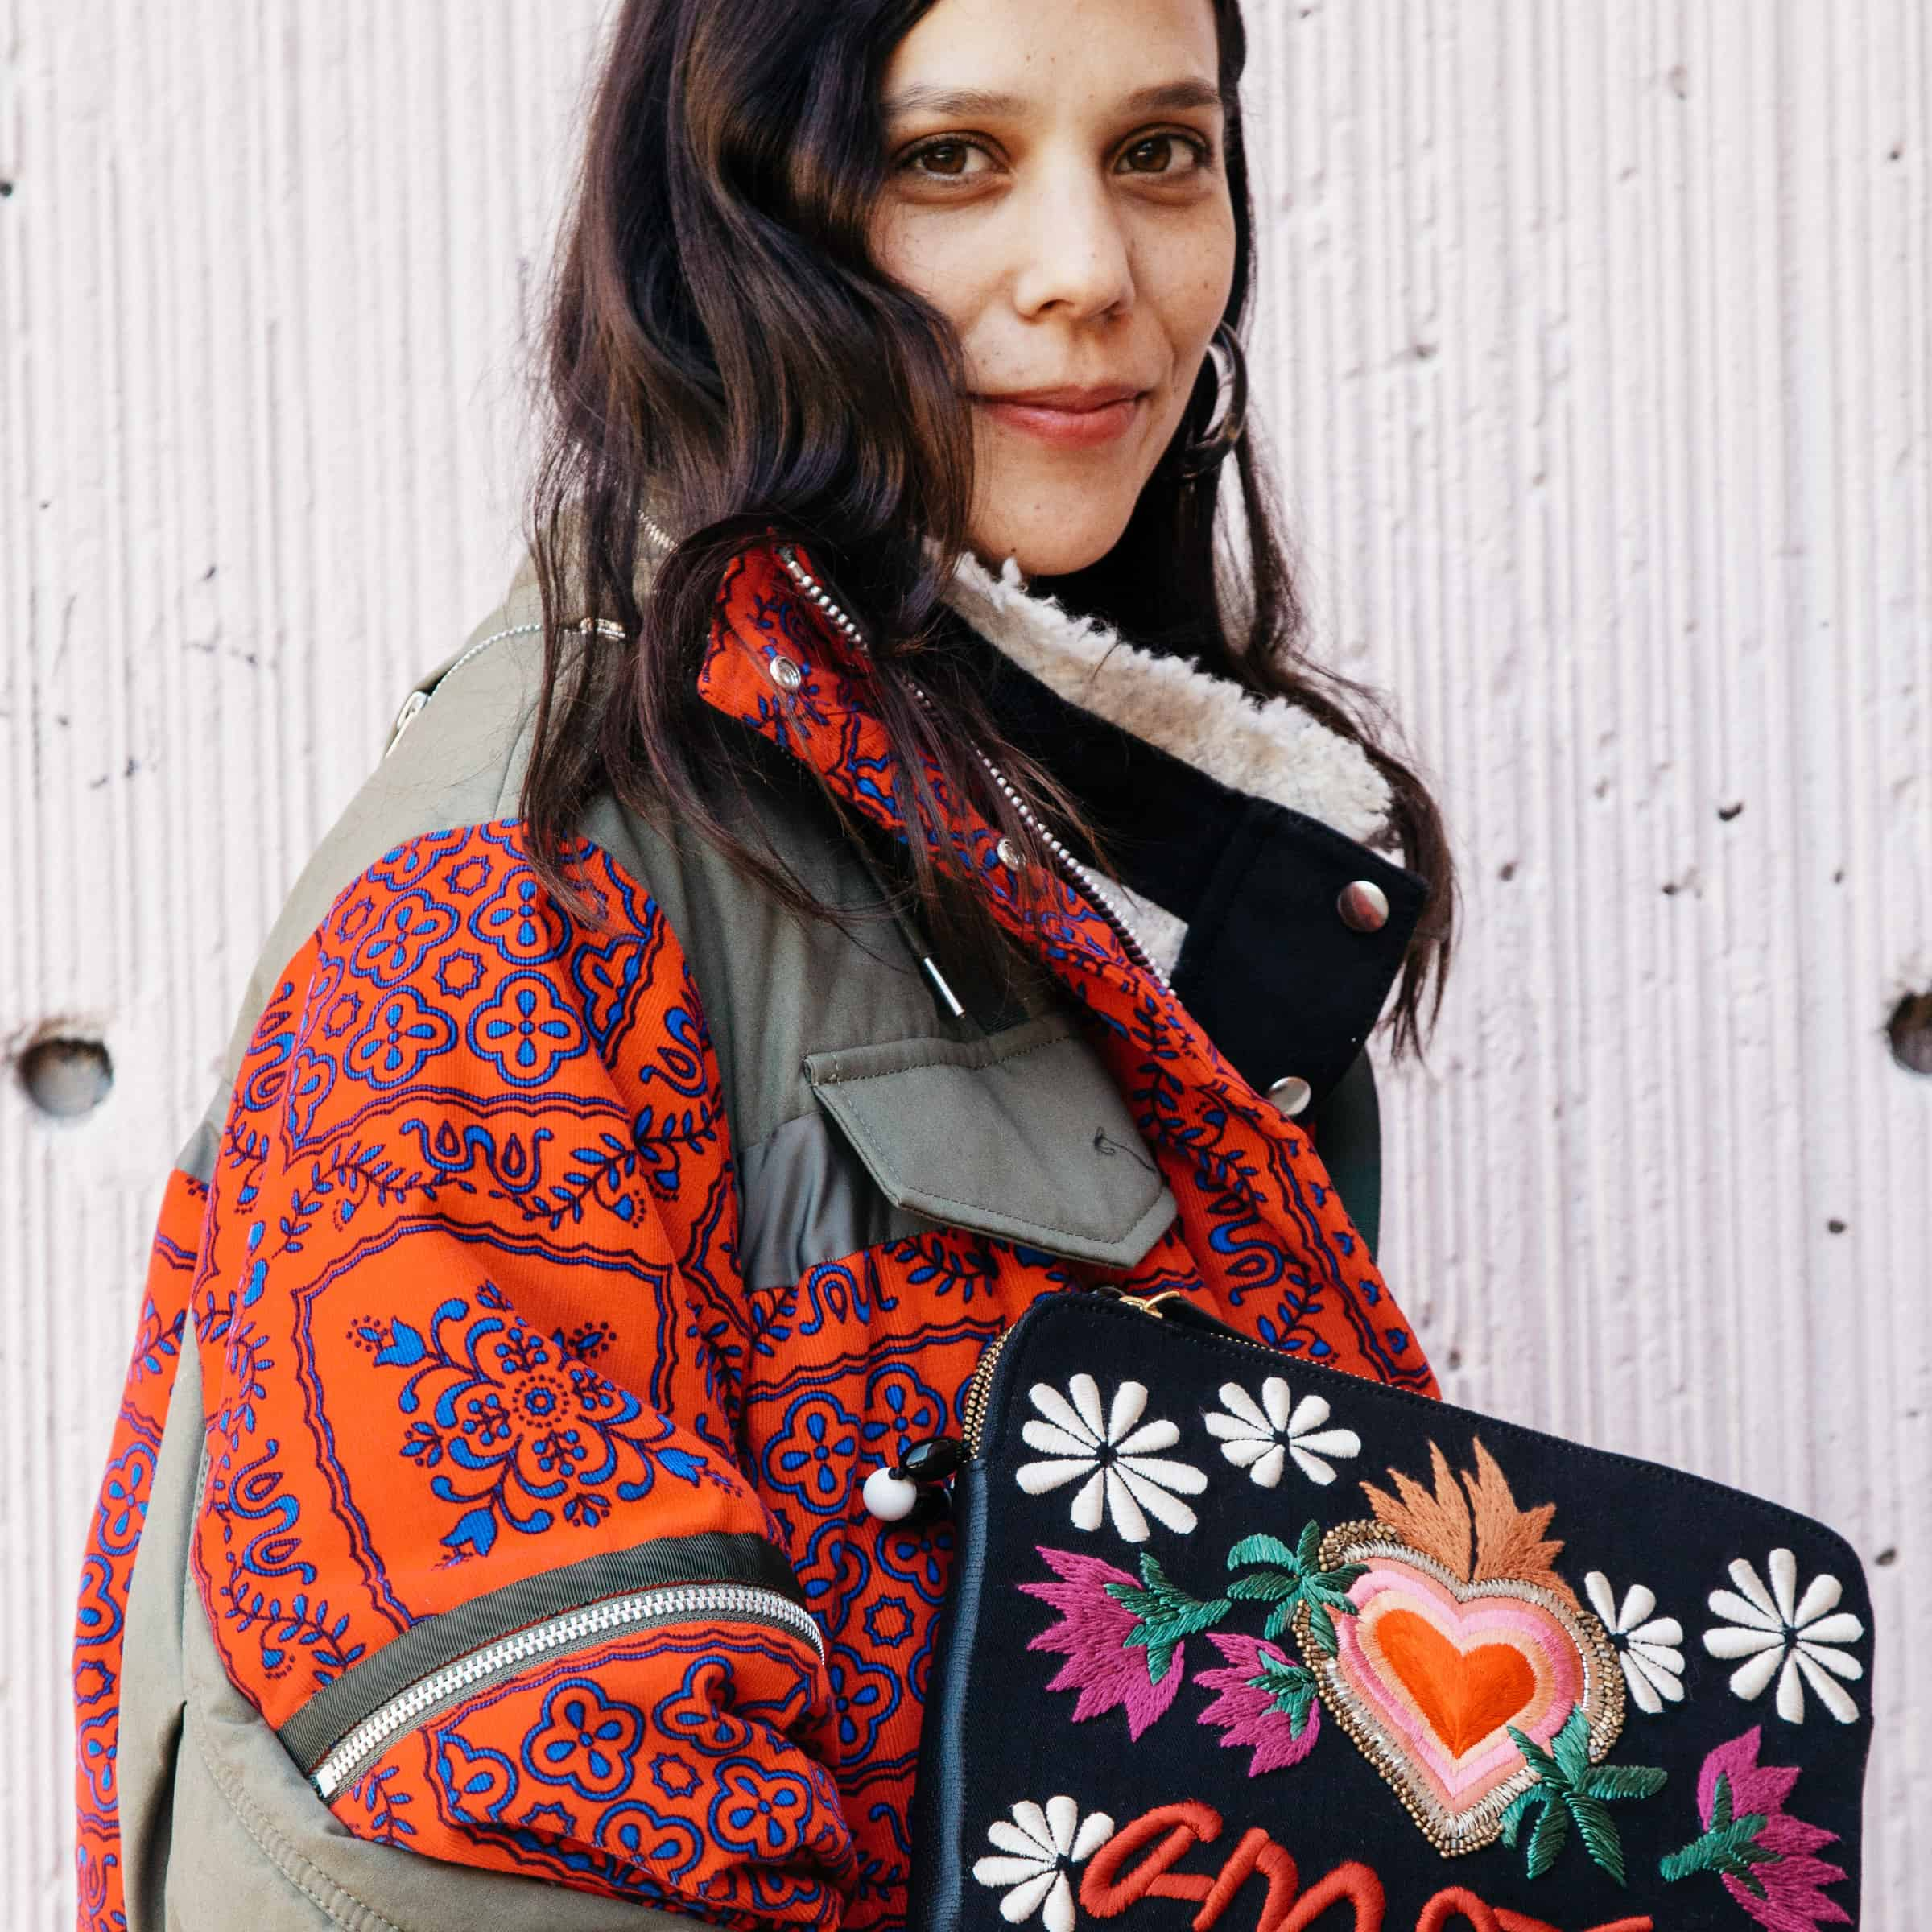 Friends For 10: Jenny Capano of Sacai